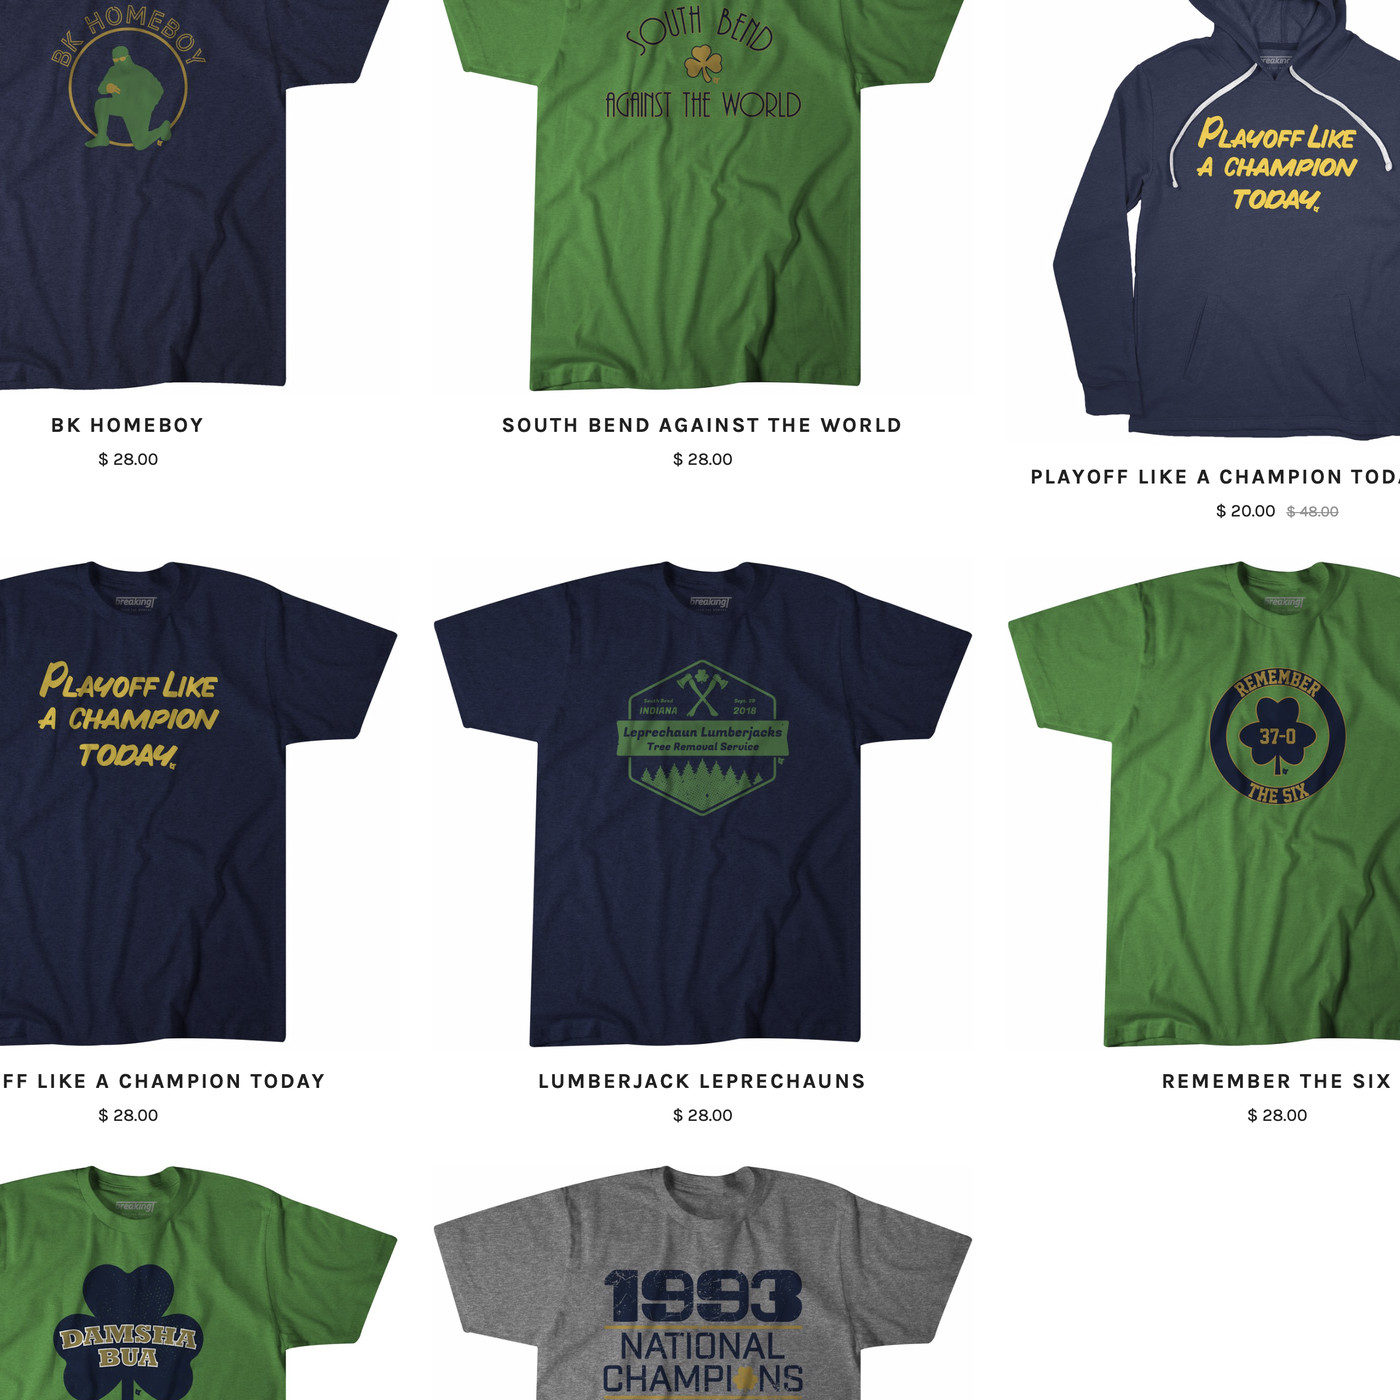 NOTRE DAME FIGHTING IRISH NAVY GOLD SOUTH BEND